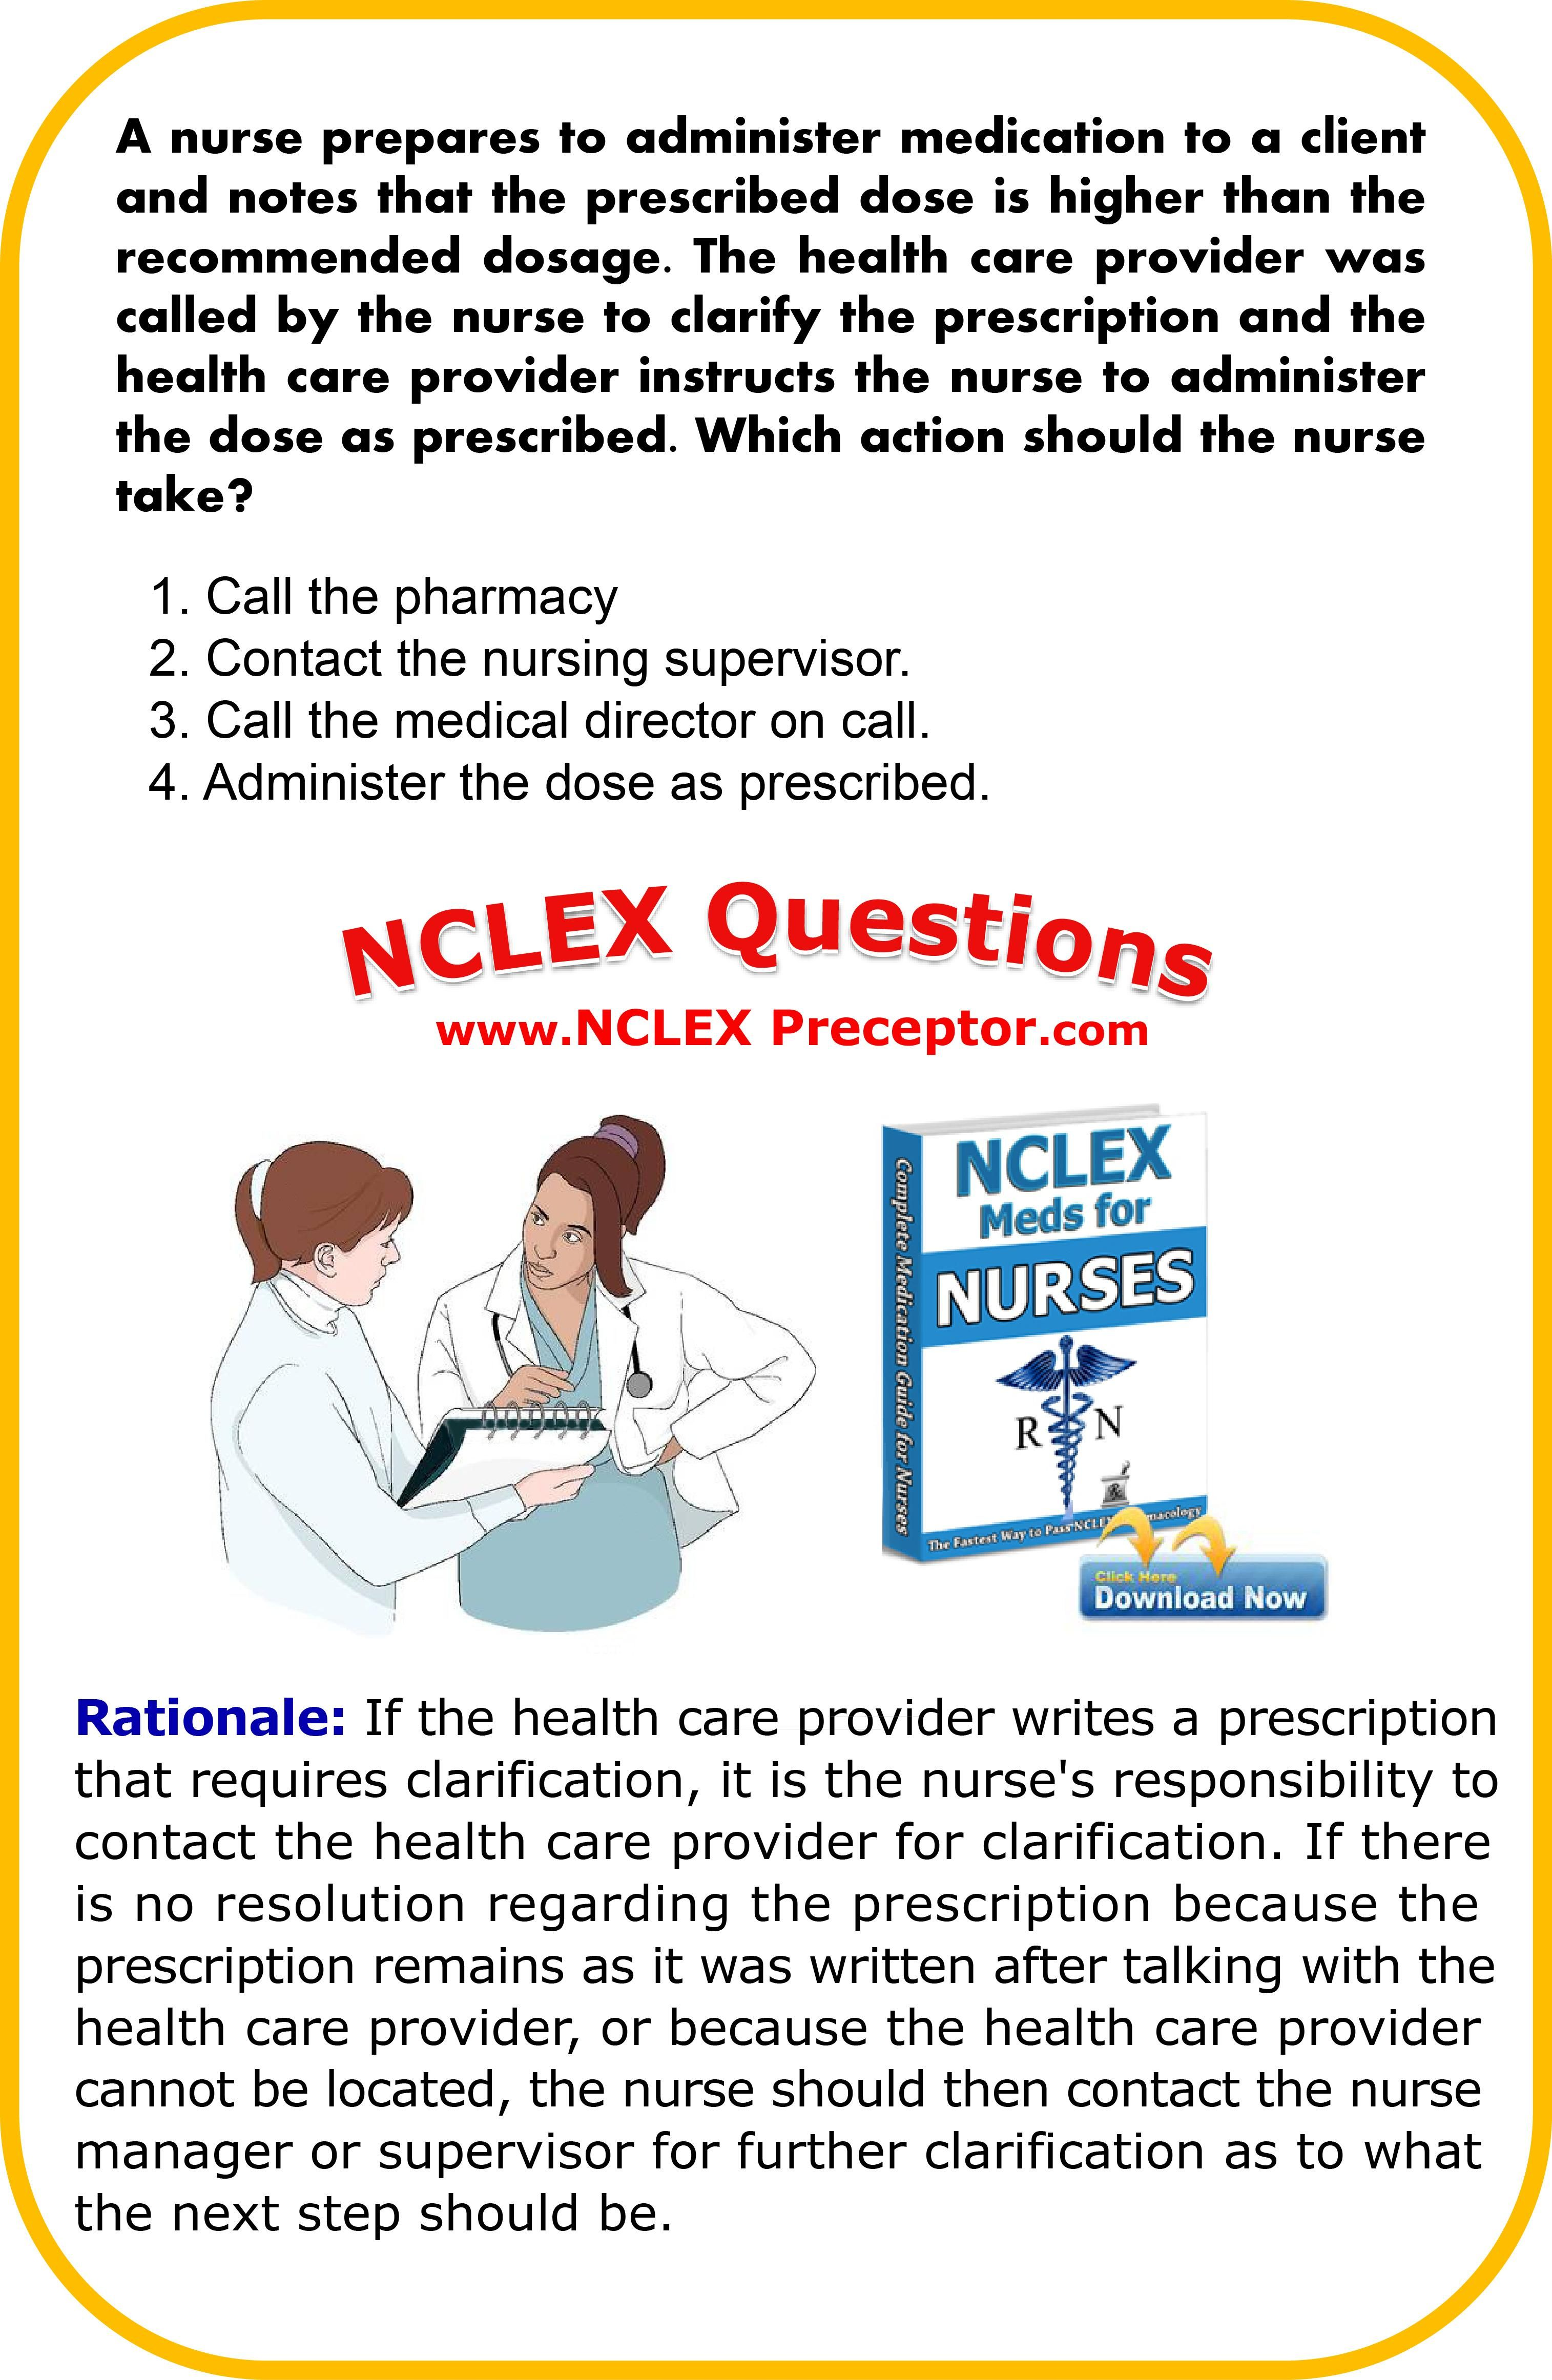 Study FREE NCLEX review questions to pass NCLEX RN exam. #NCLEXCoreMeasures